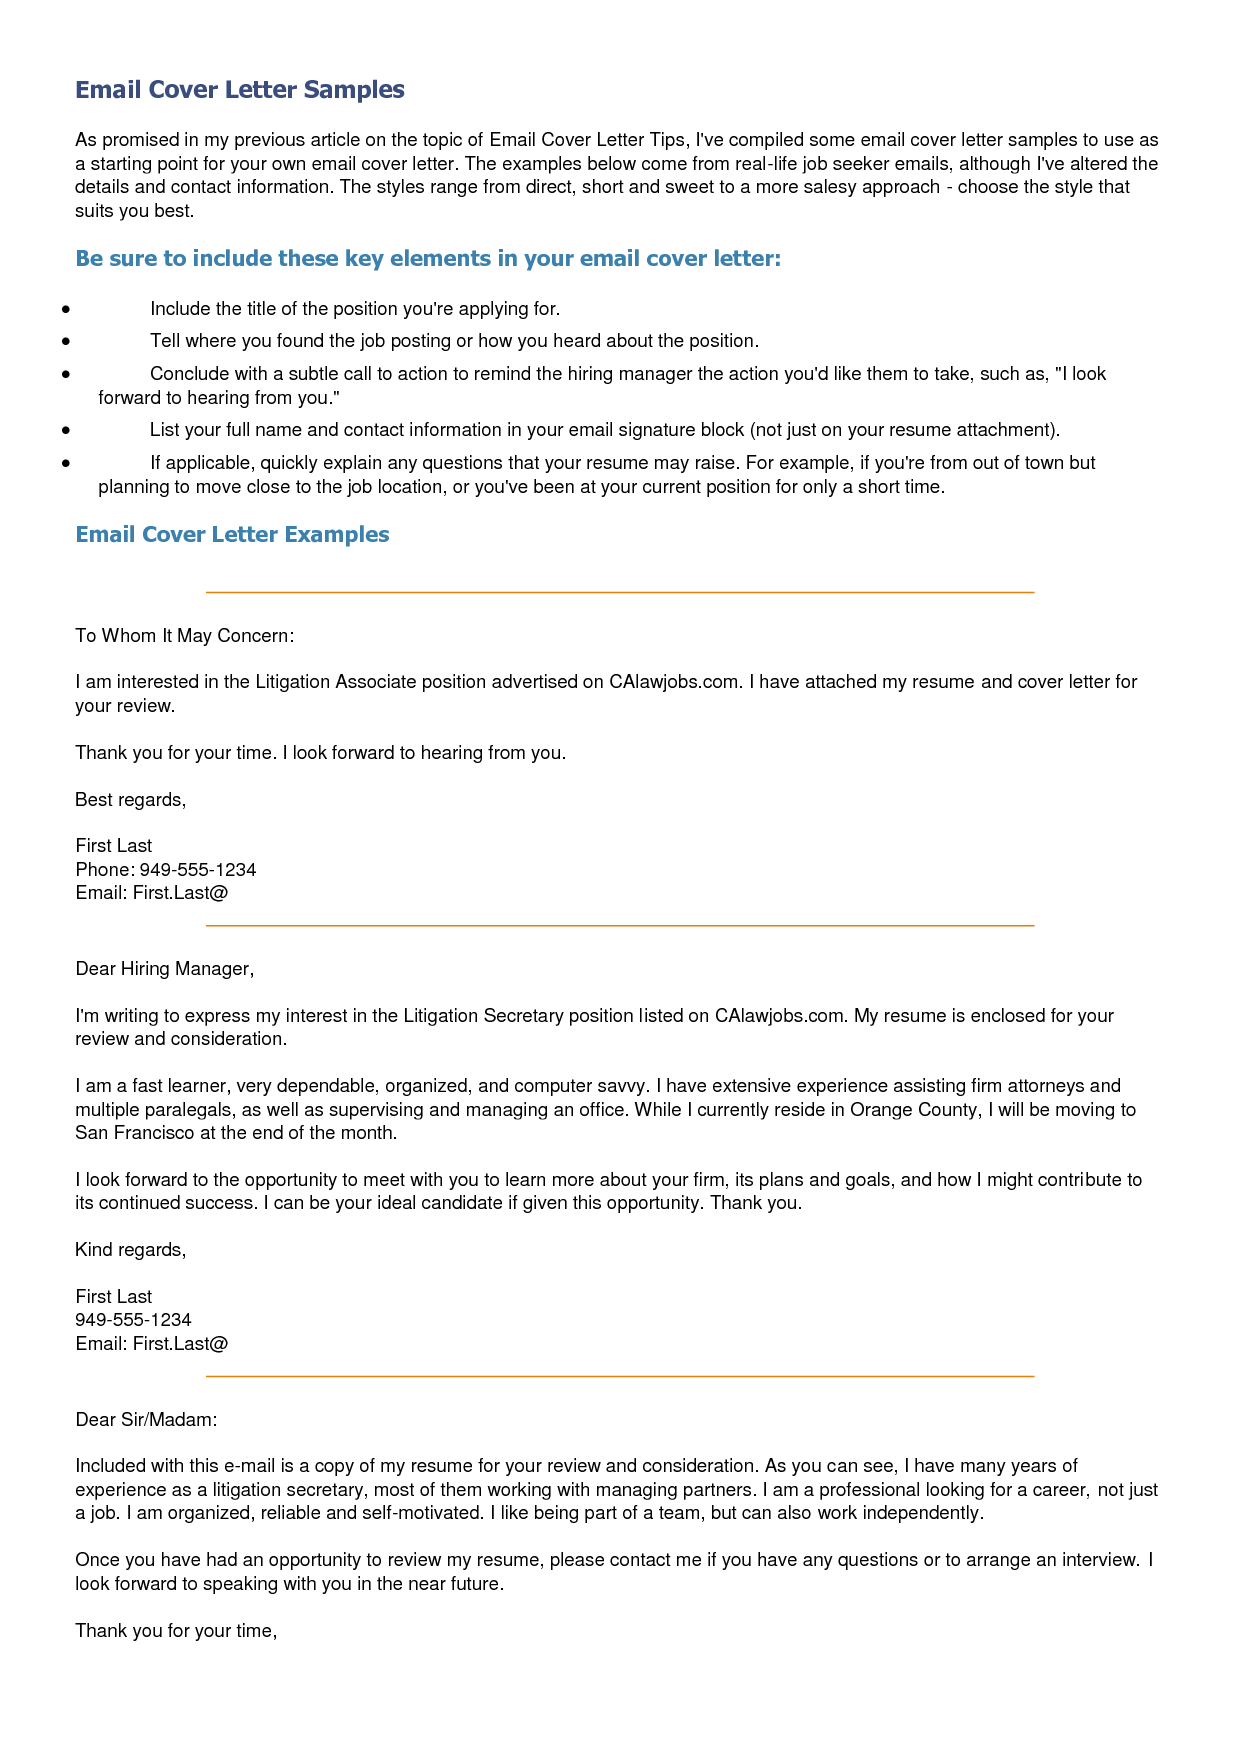 Email Cover Letter Sample Samplesg Business Via Certified Mail